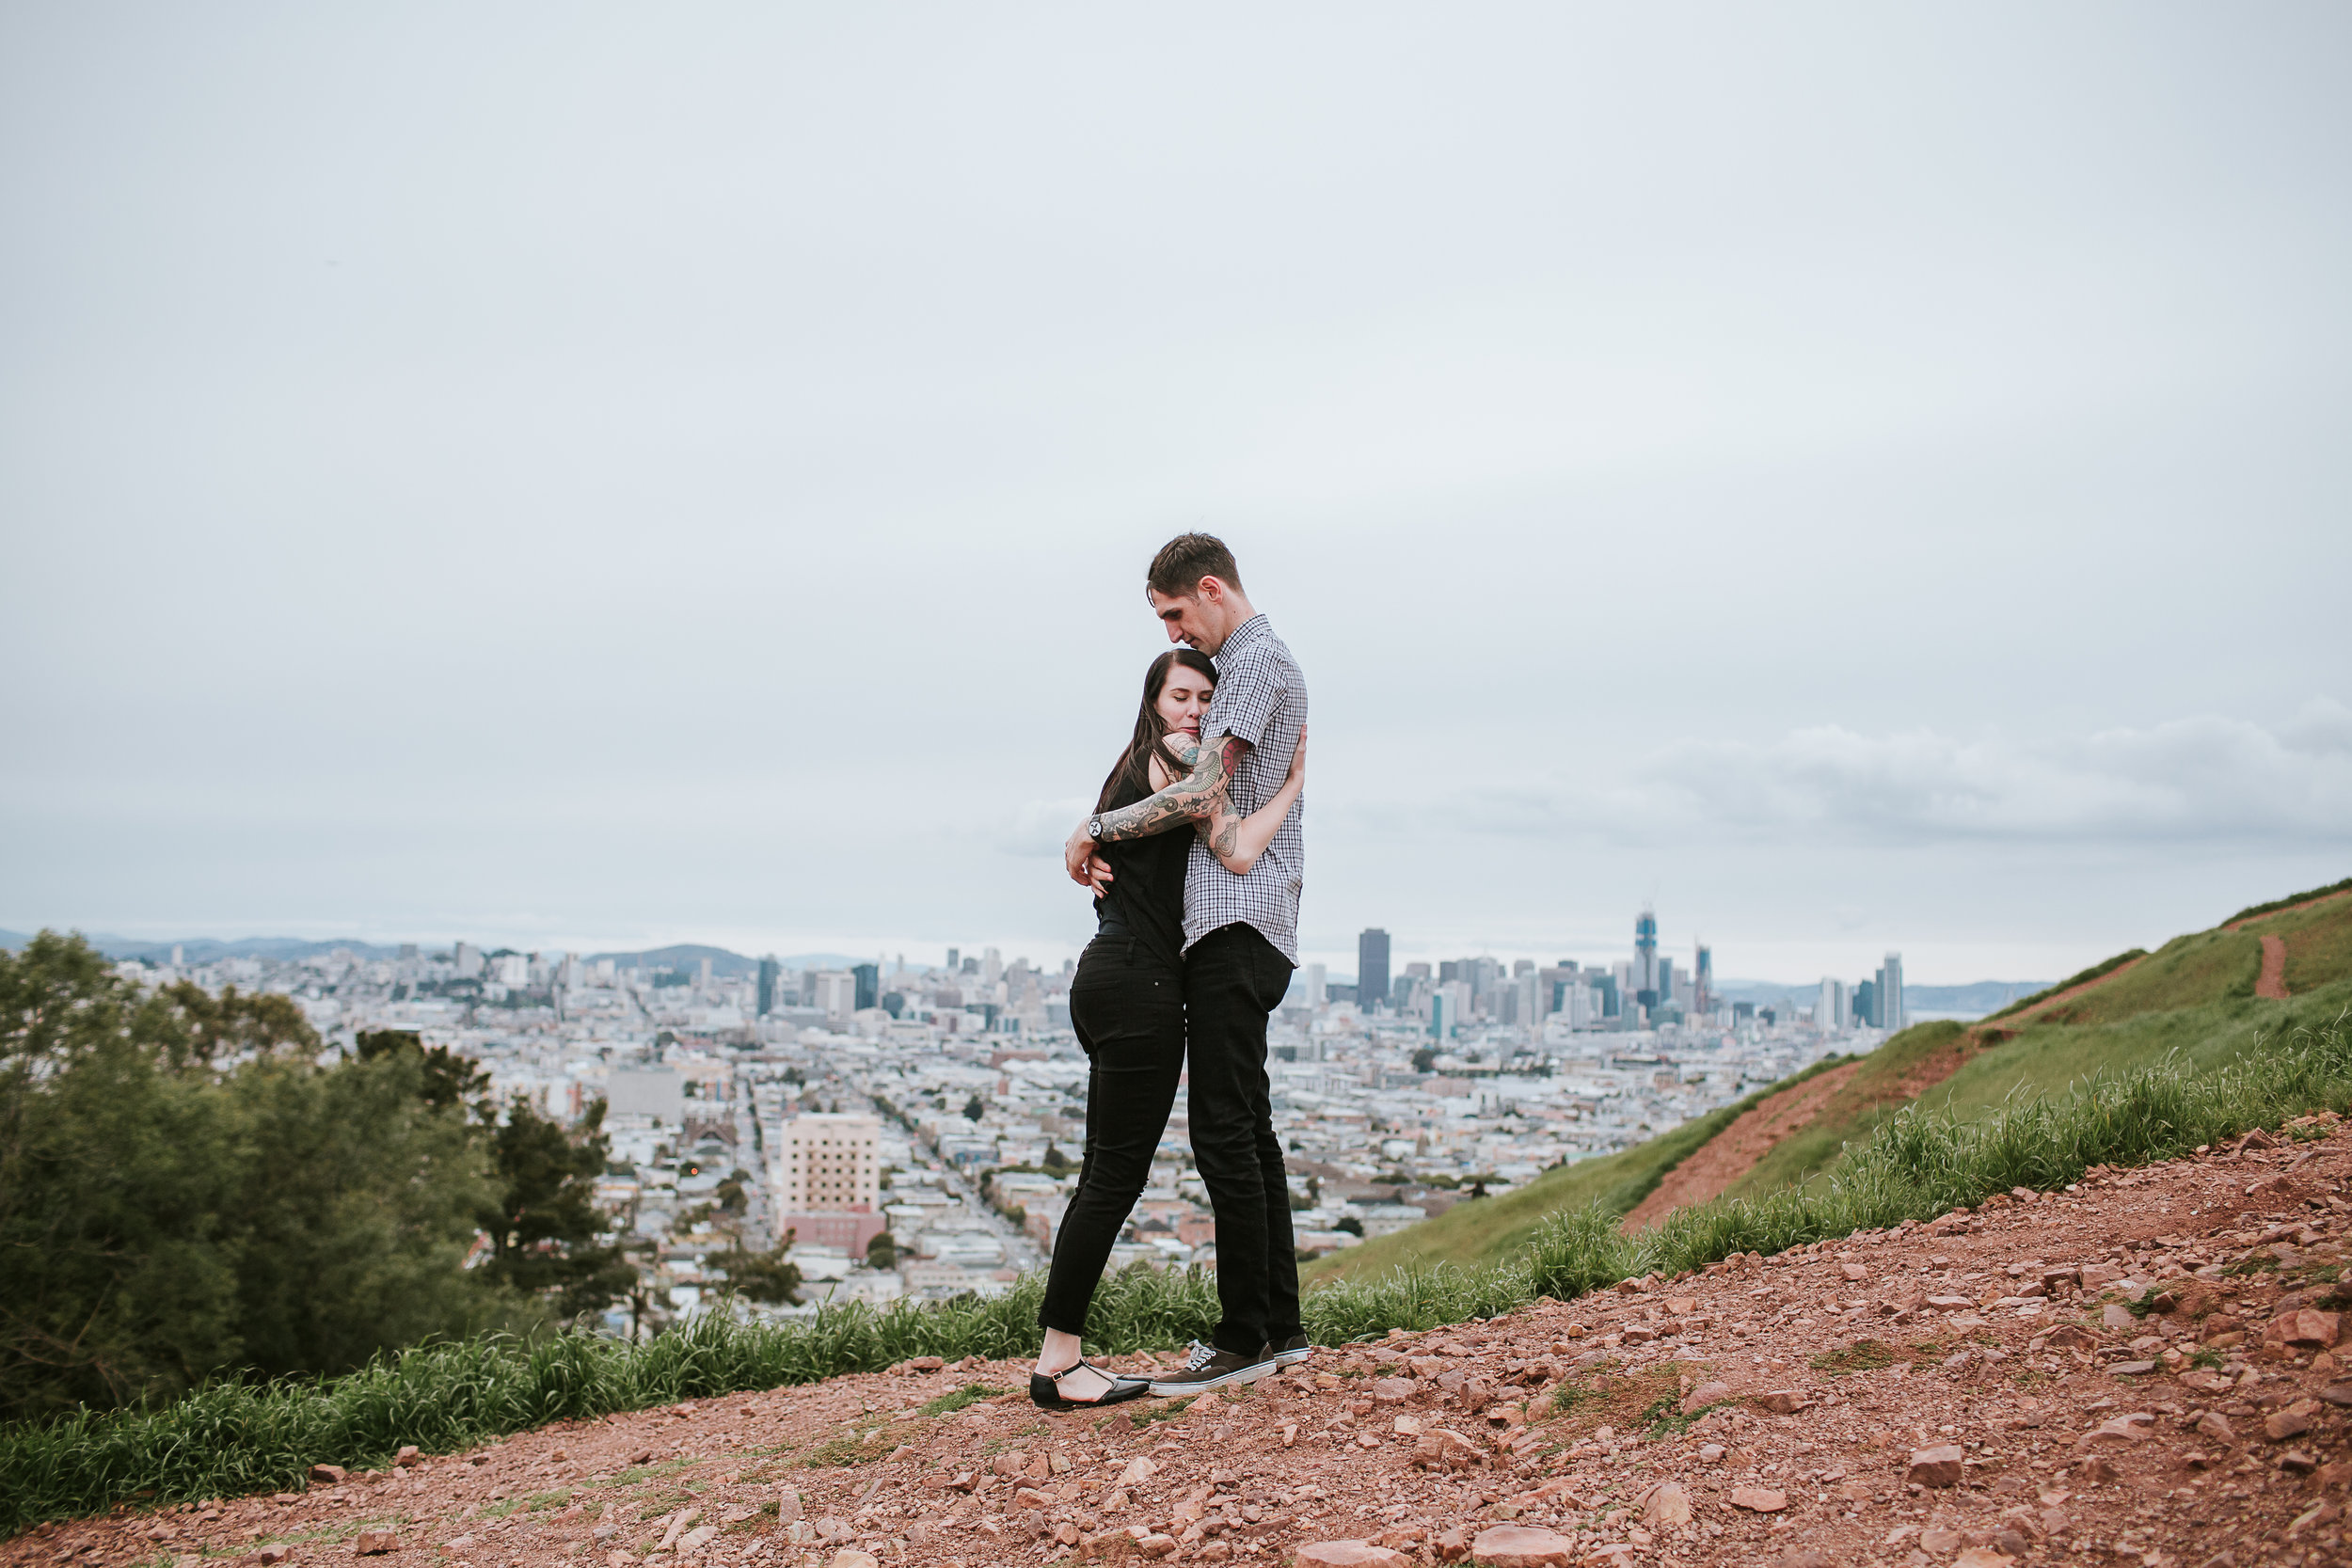 Nikki.Steven.san francisco. engagement. bernal heights dolores mission district-87.jpg